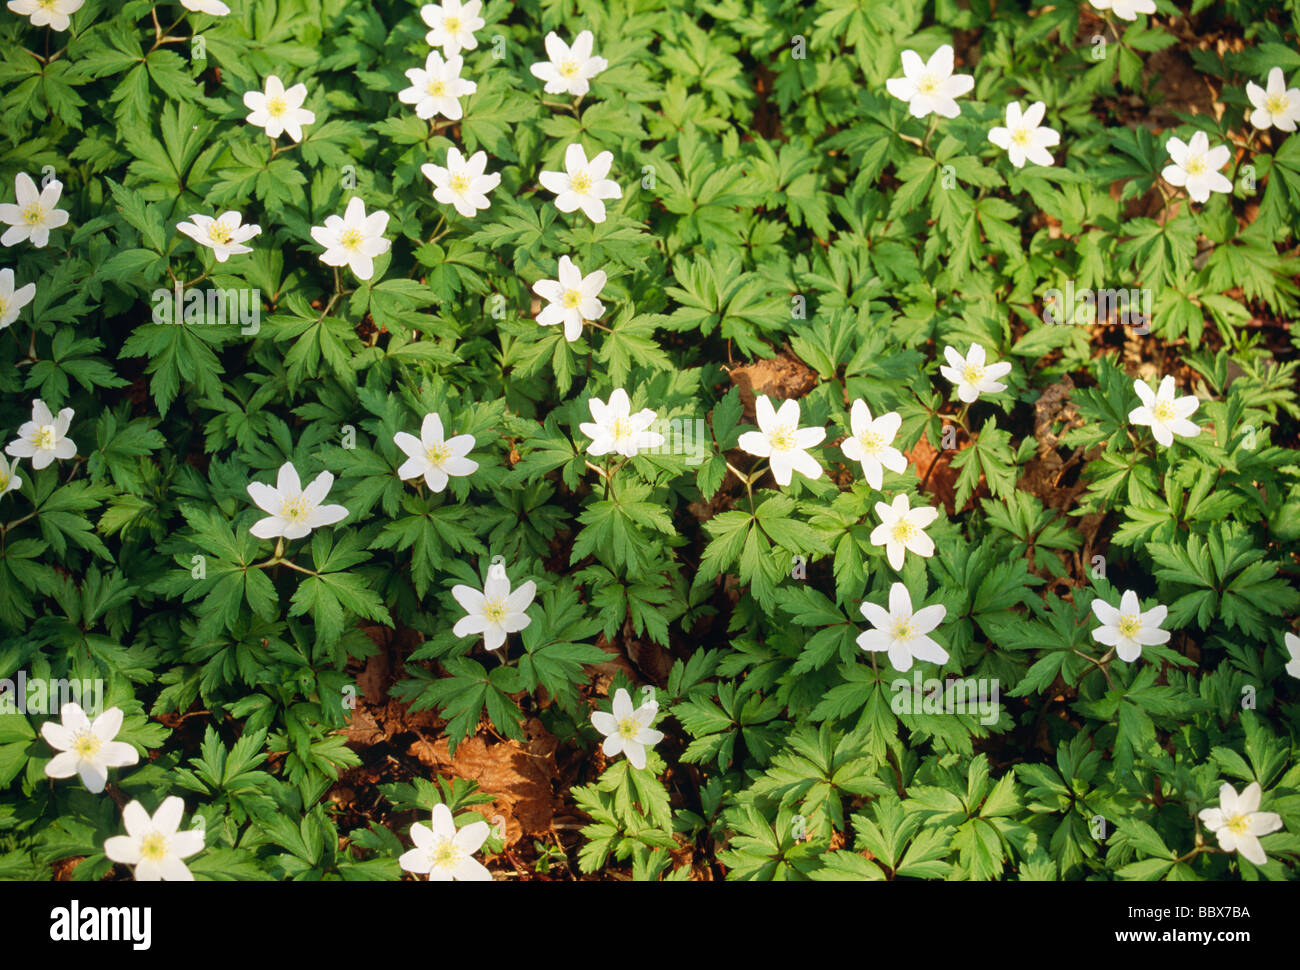 Green Plants With White Flowers Stock Photo 24548142 Alamy